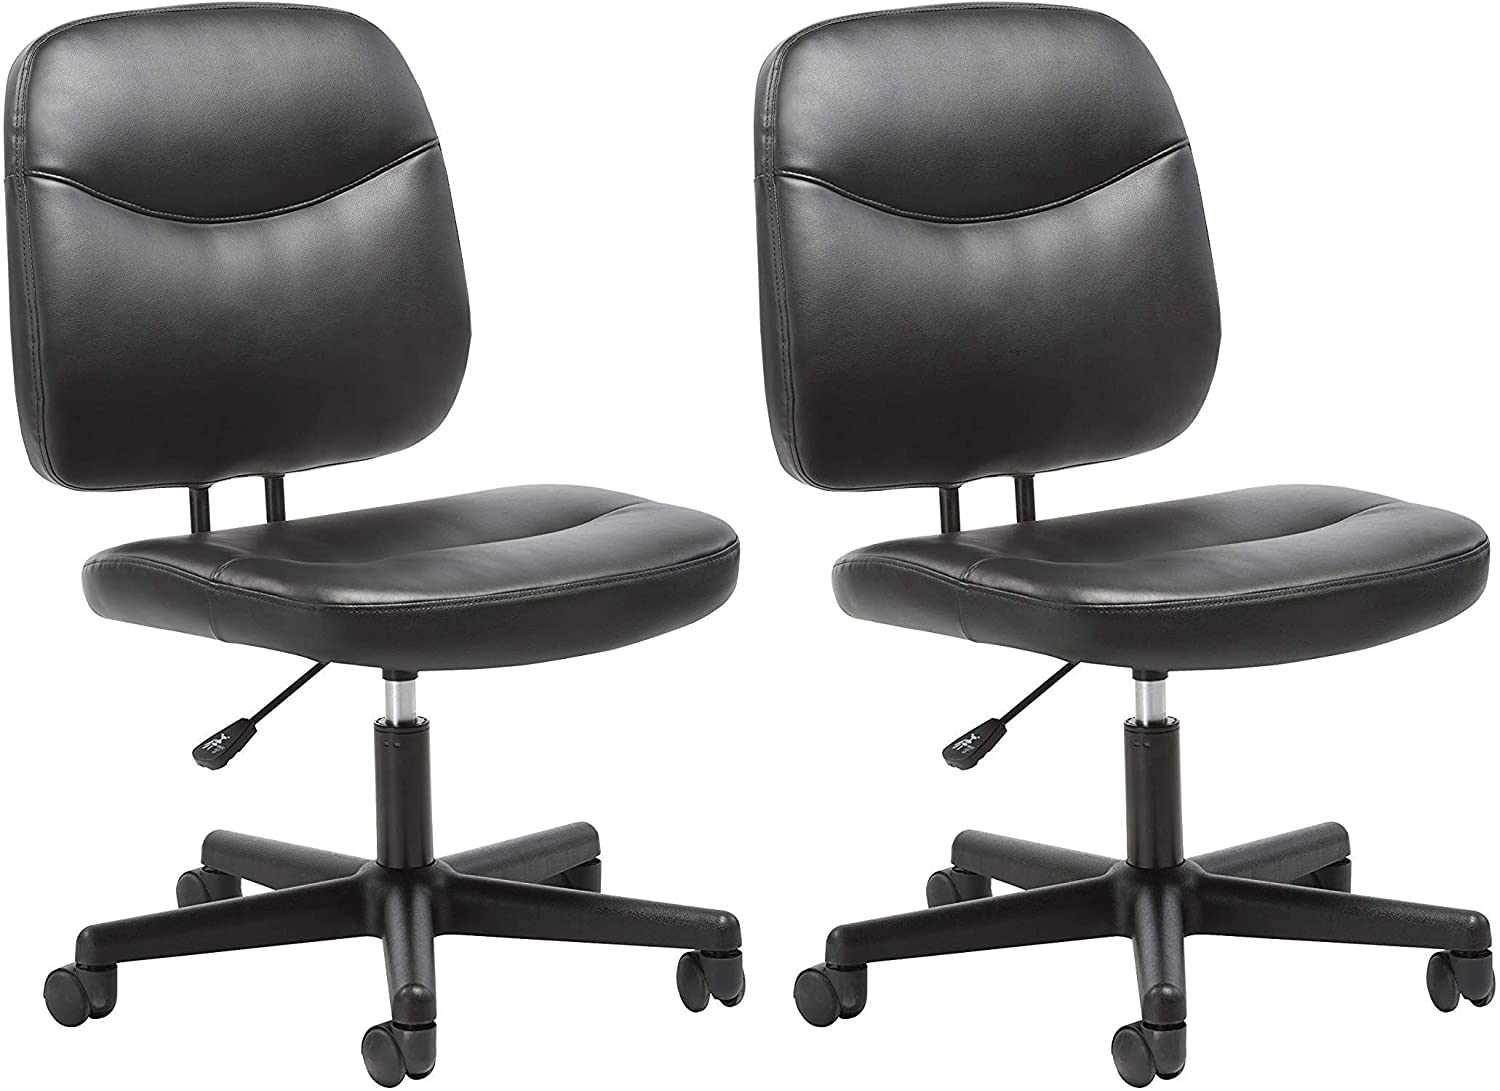 Essentials Leather Task Chair – Ergonomic Adjustable Office Chair, Black ESS-6005 Pack of 2